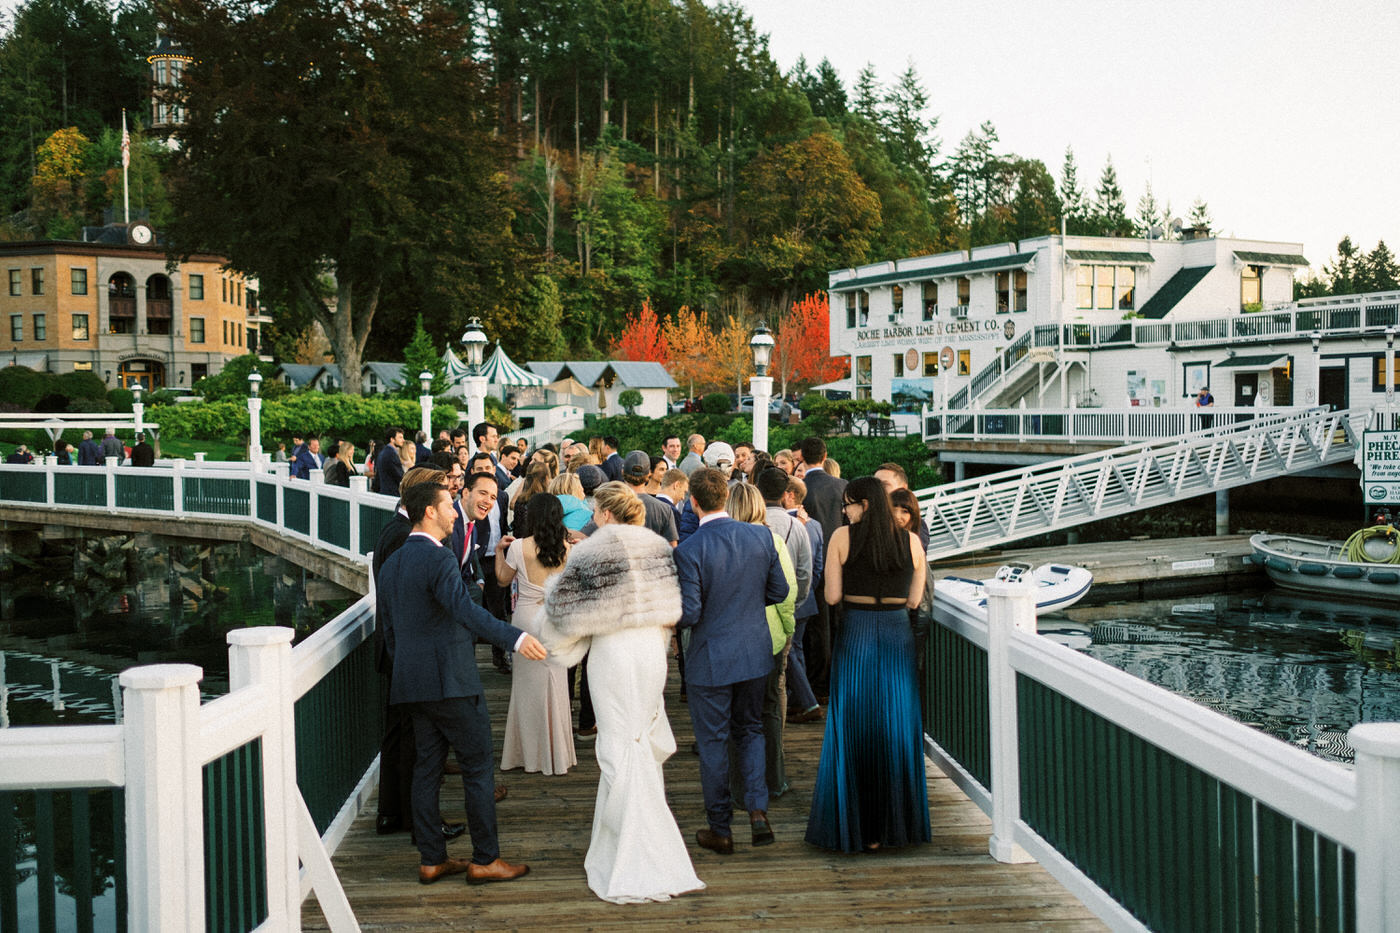 246-pacific-northwest-wedding-photography-by-ryan-flynn.jpg